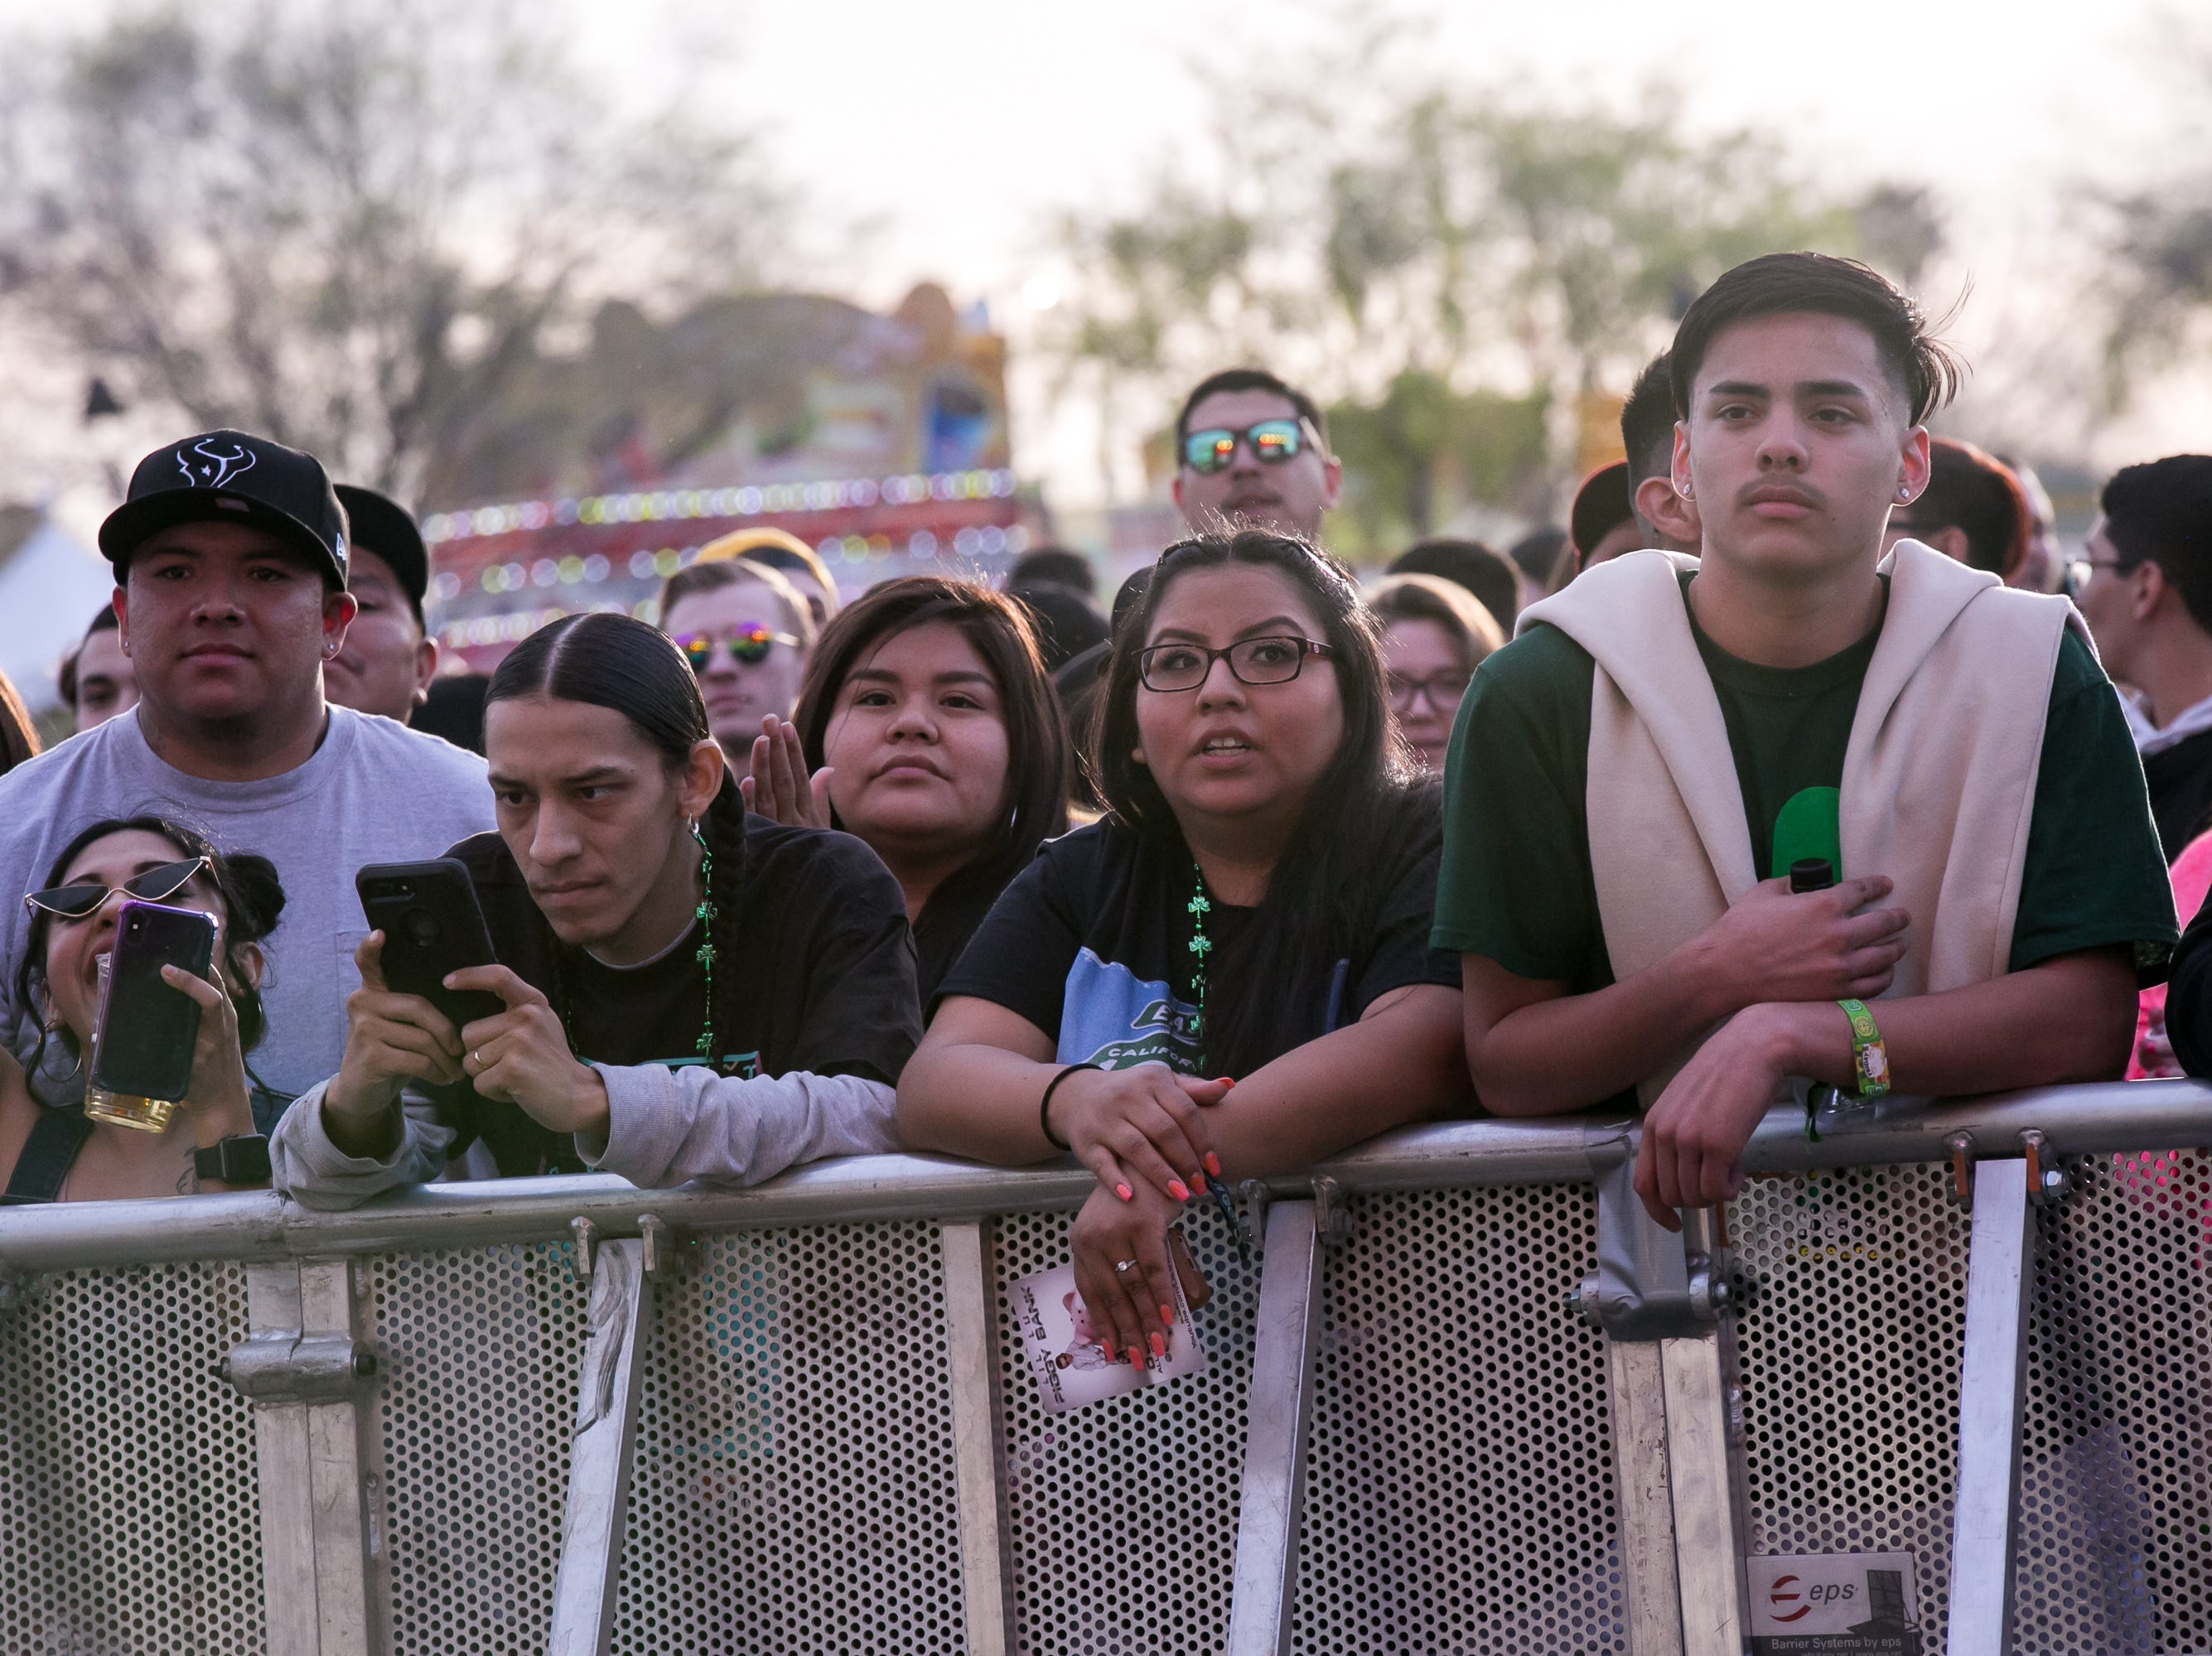 Disorganization at Pot of Gold Music Festival at Steele Indian School Park caused some issues on Friday, March 15, 2019.